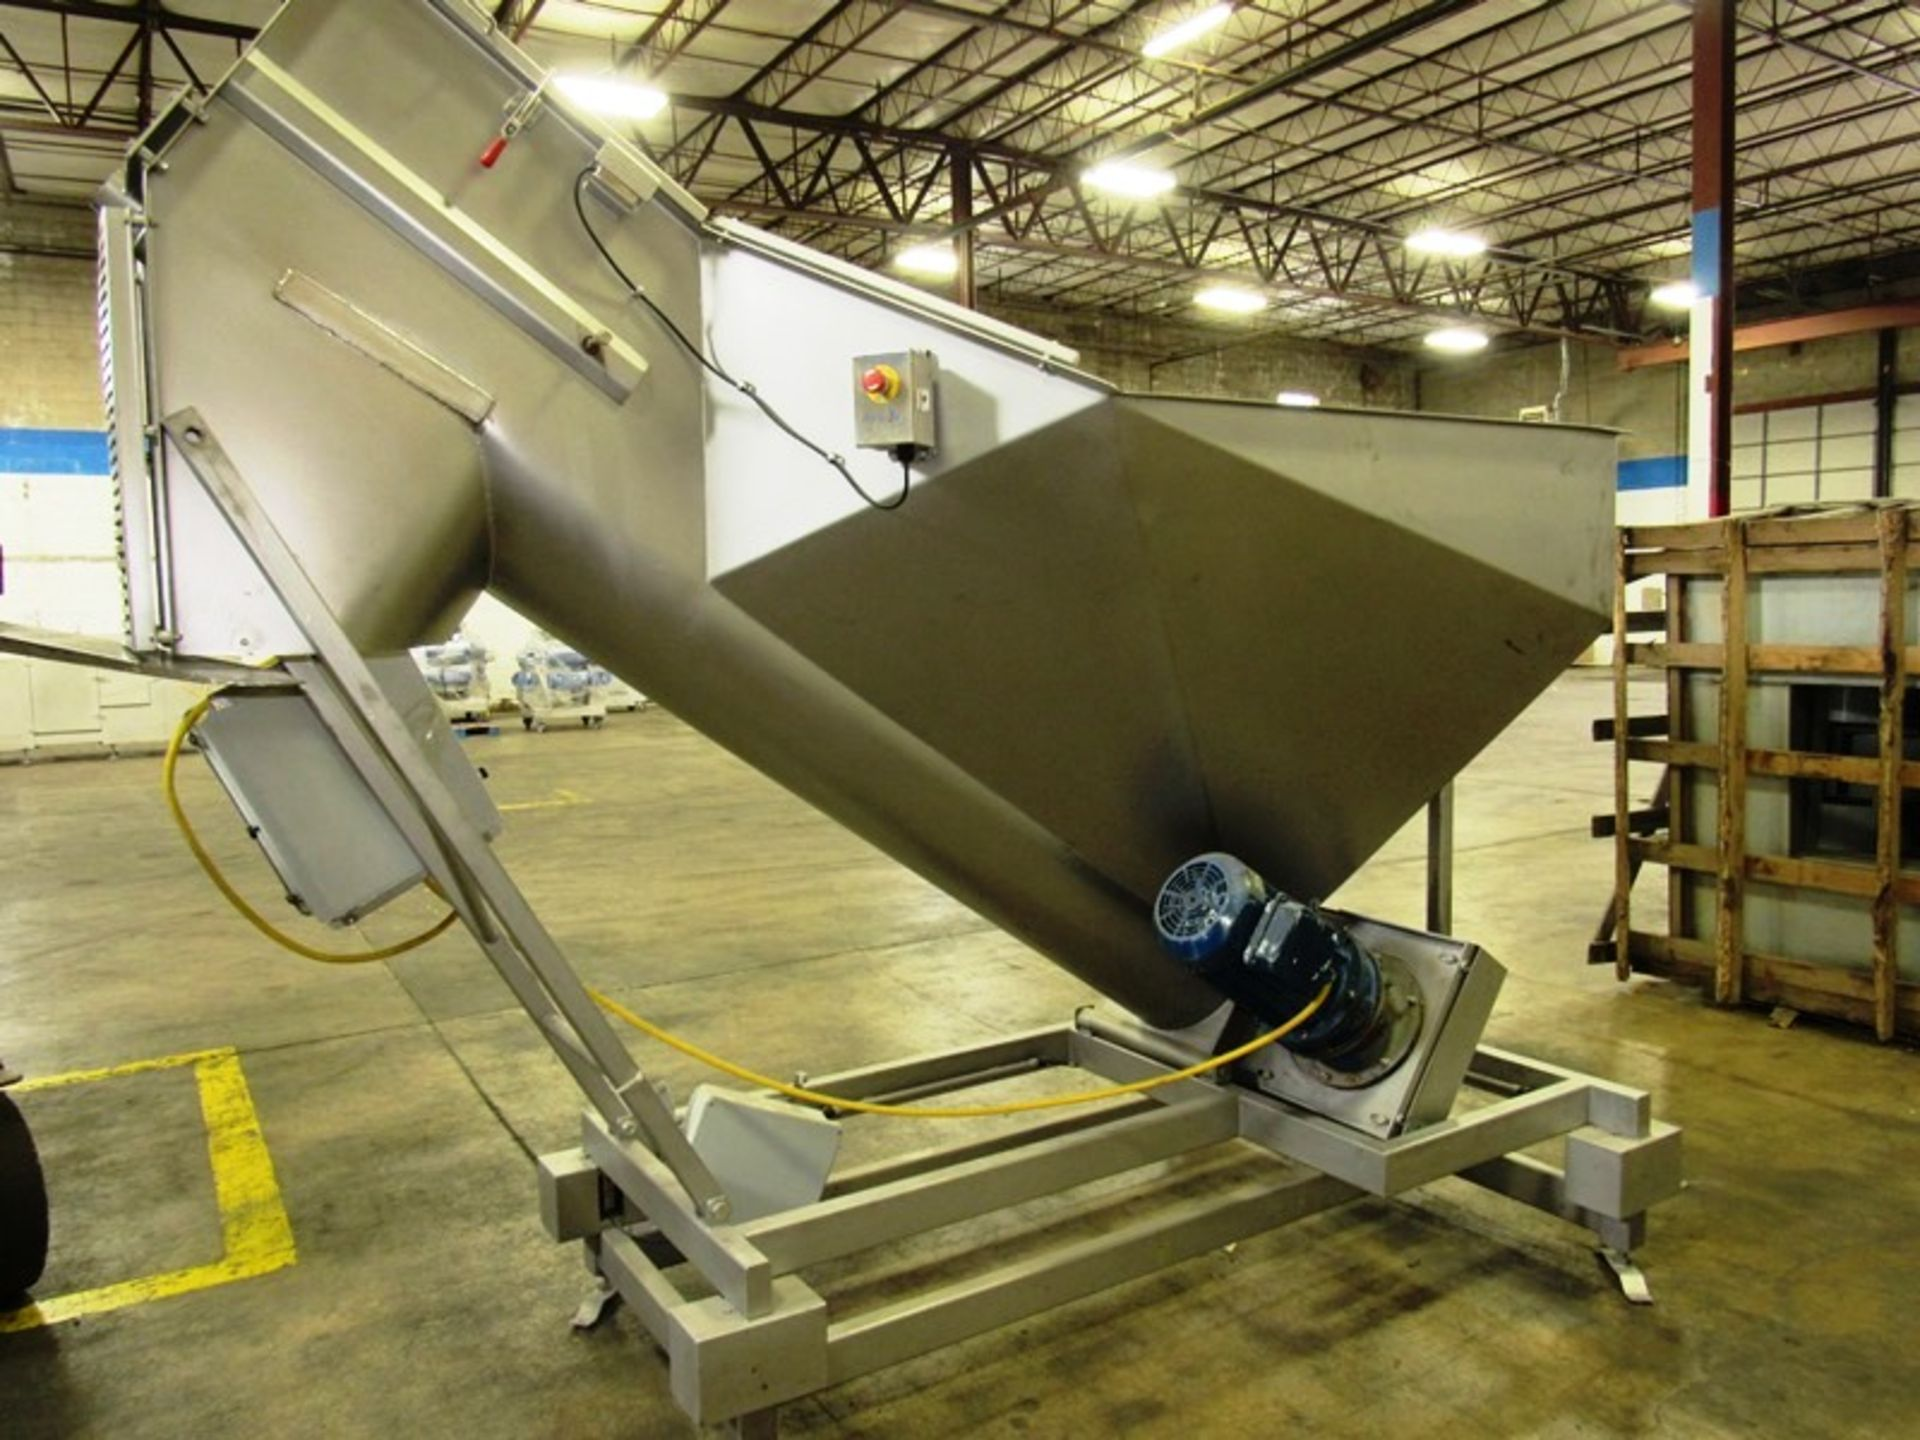 """Stainless Steel Screw Loader, 16"""" Dia. X 8' L stainless steel screw, 5' W X 5' L load hopper, 15 h. - Image 2 of 7"""